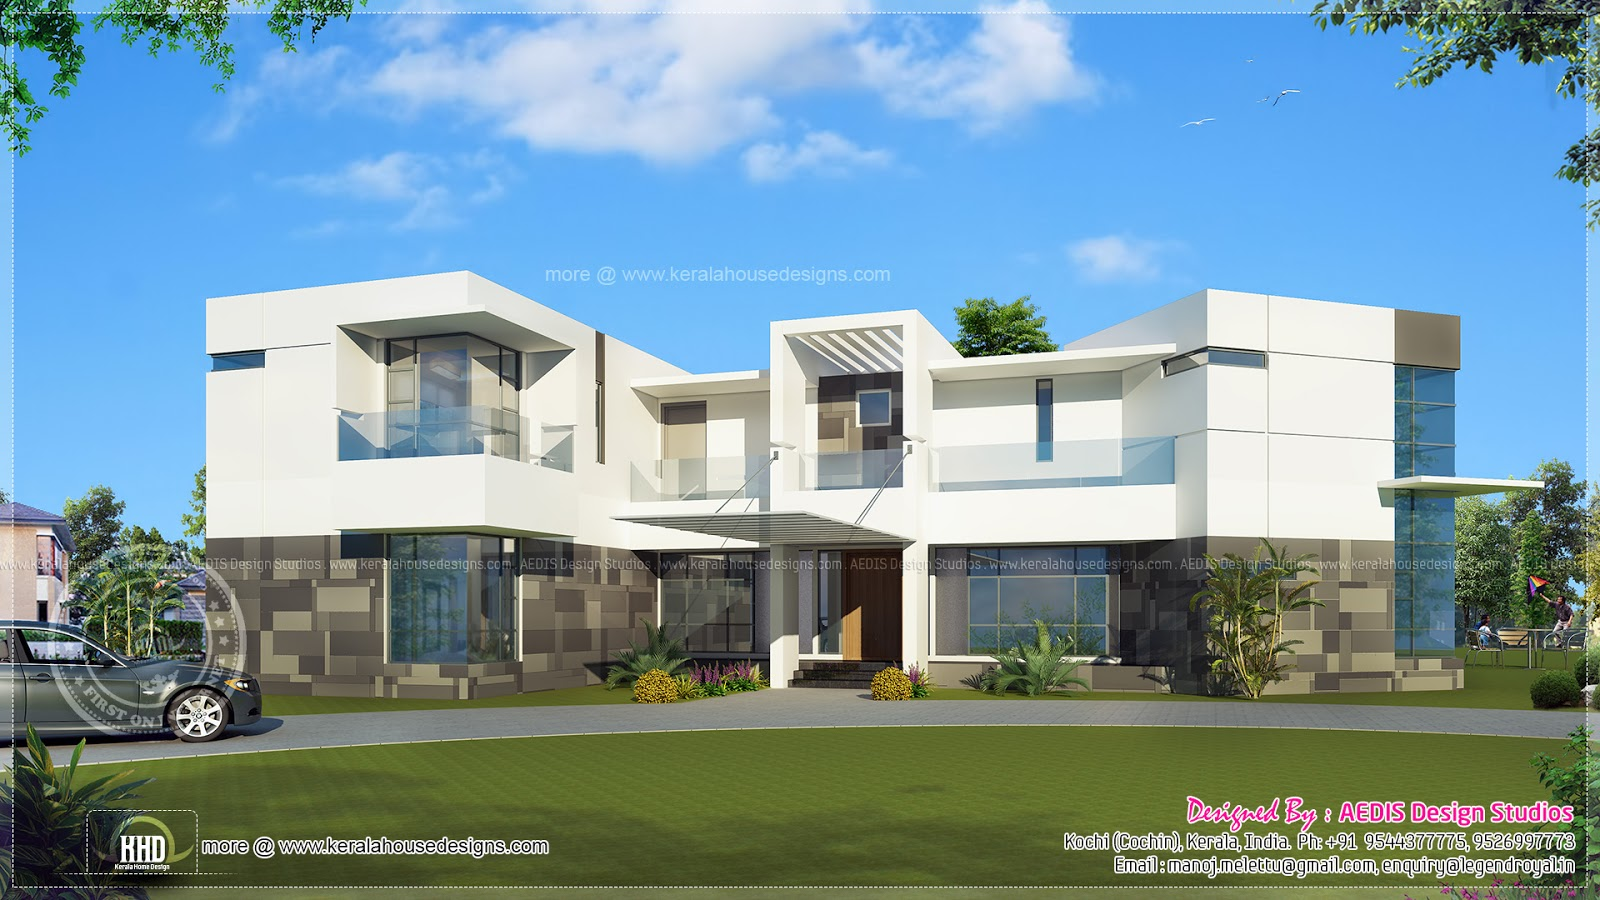 Luxury house exterior in 334 square meter home kerala plans - Houses undersquare meters ...